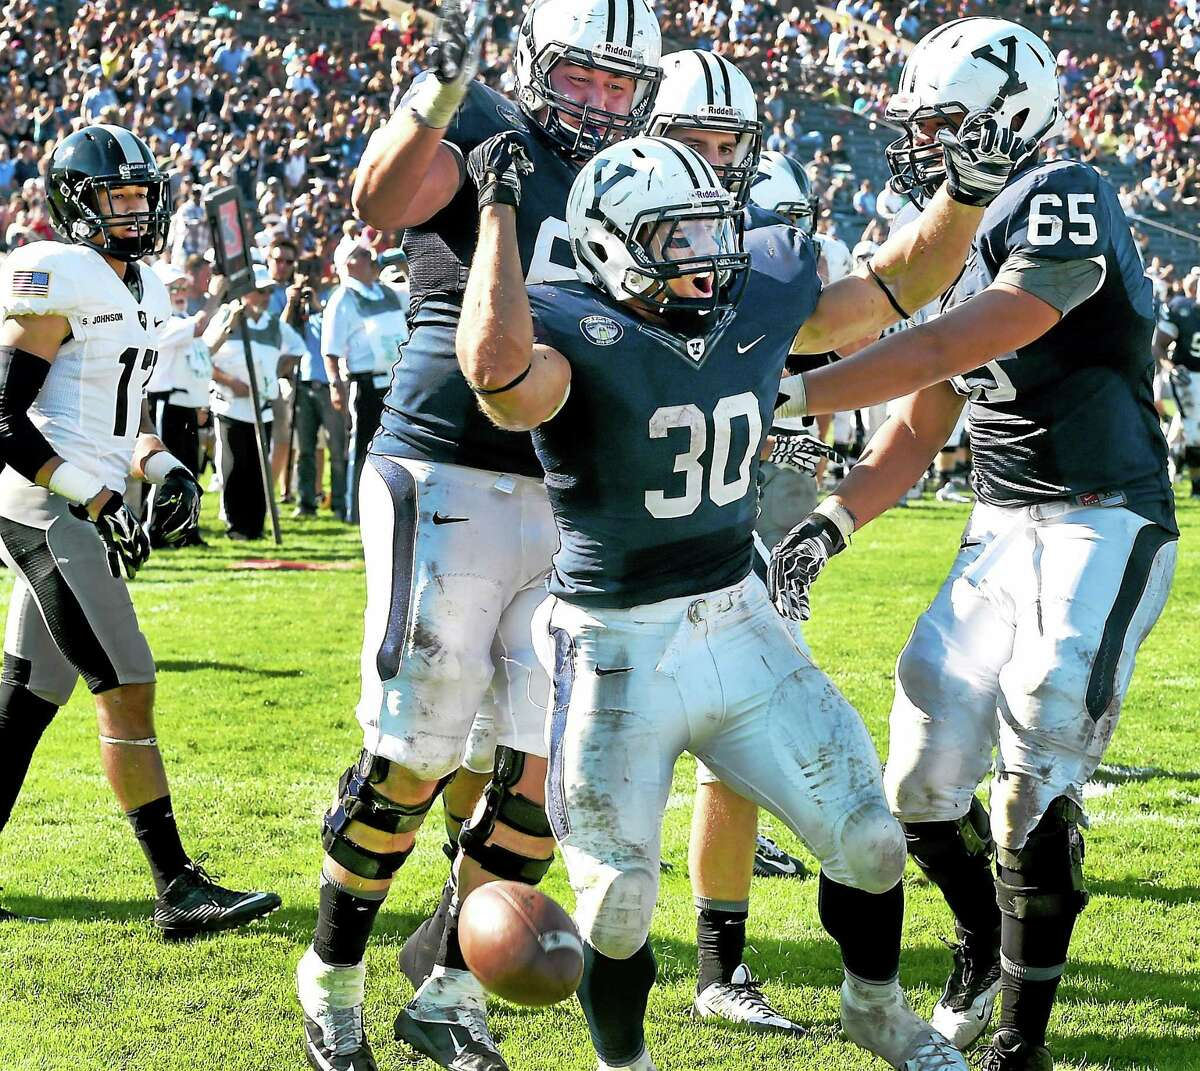 Yale running back Tyler Varga celebrates a touchdown against Army on Sept. 27 at Yale Bowl.